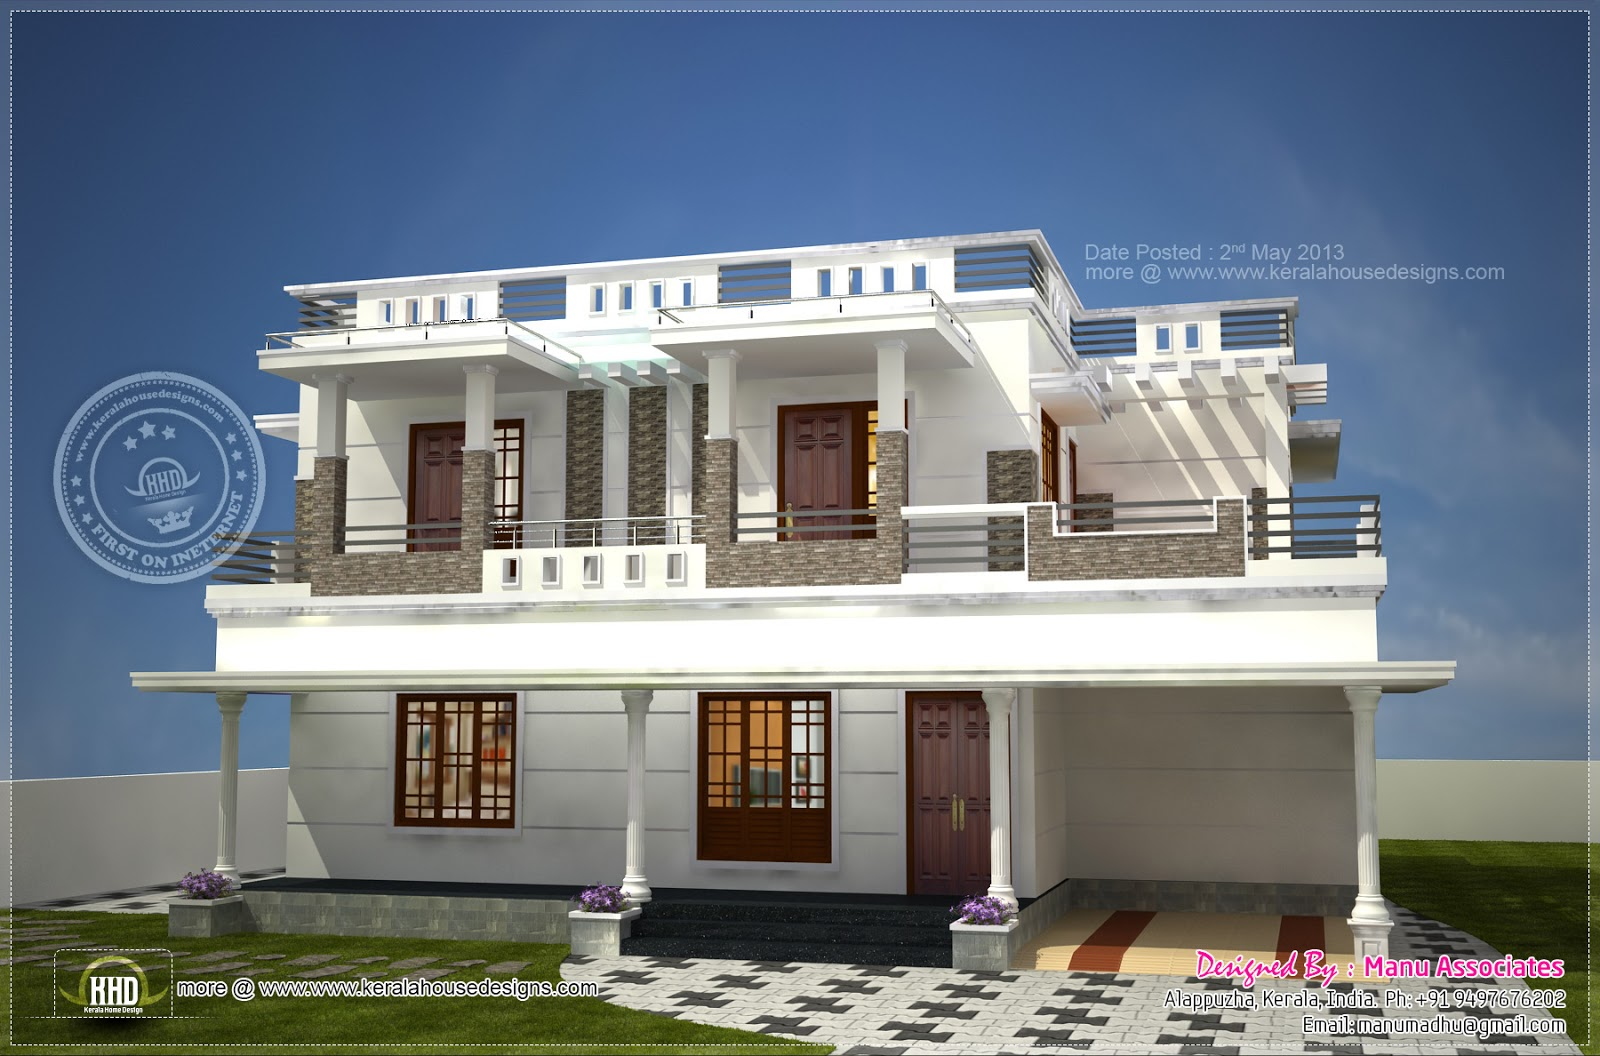 Modern home design in alappuzha kerala house design plans for Kerala modern house designs